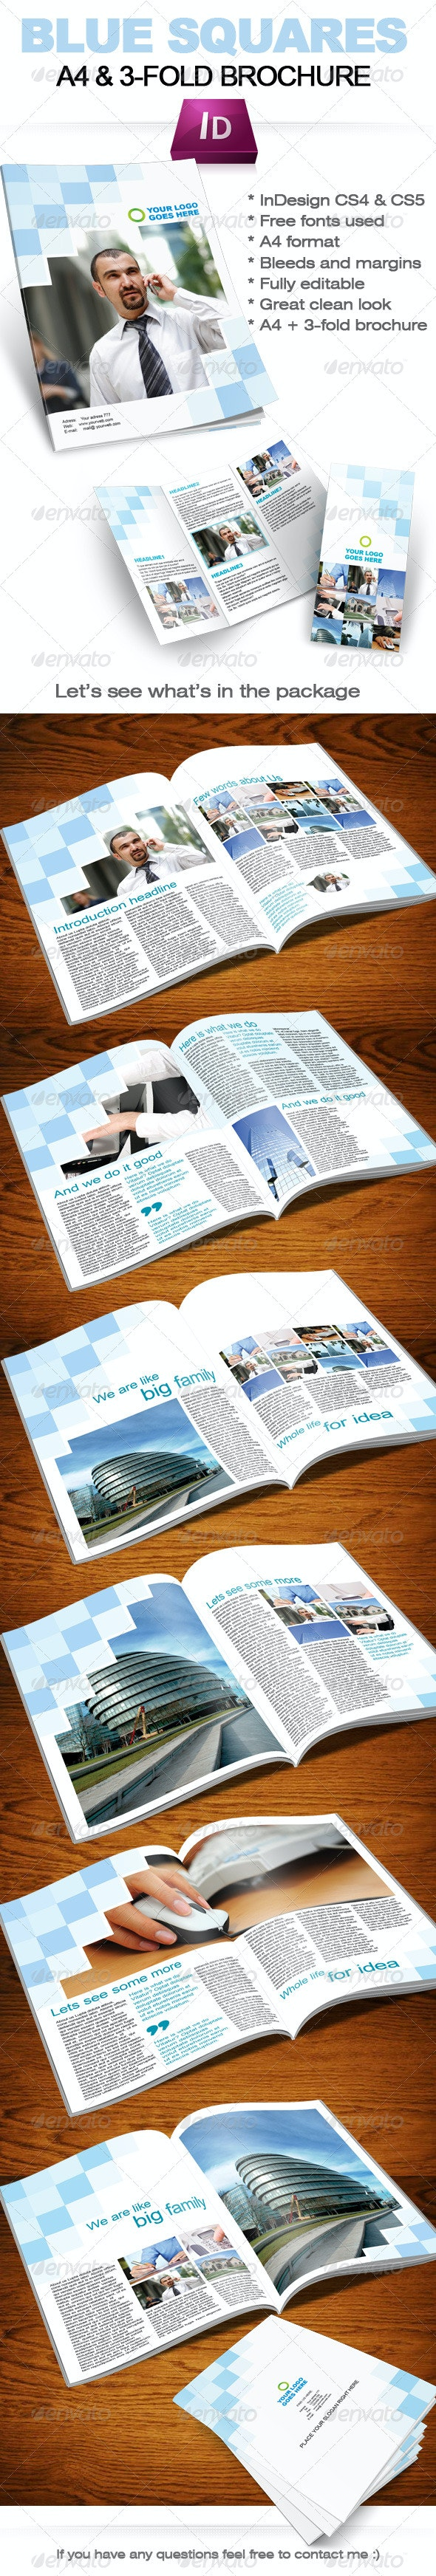 Blue Square Business Brochure (A4 + 3-fold format) - Corporate Brochures